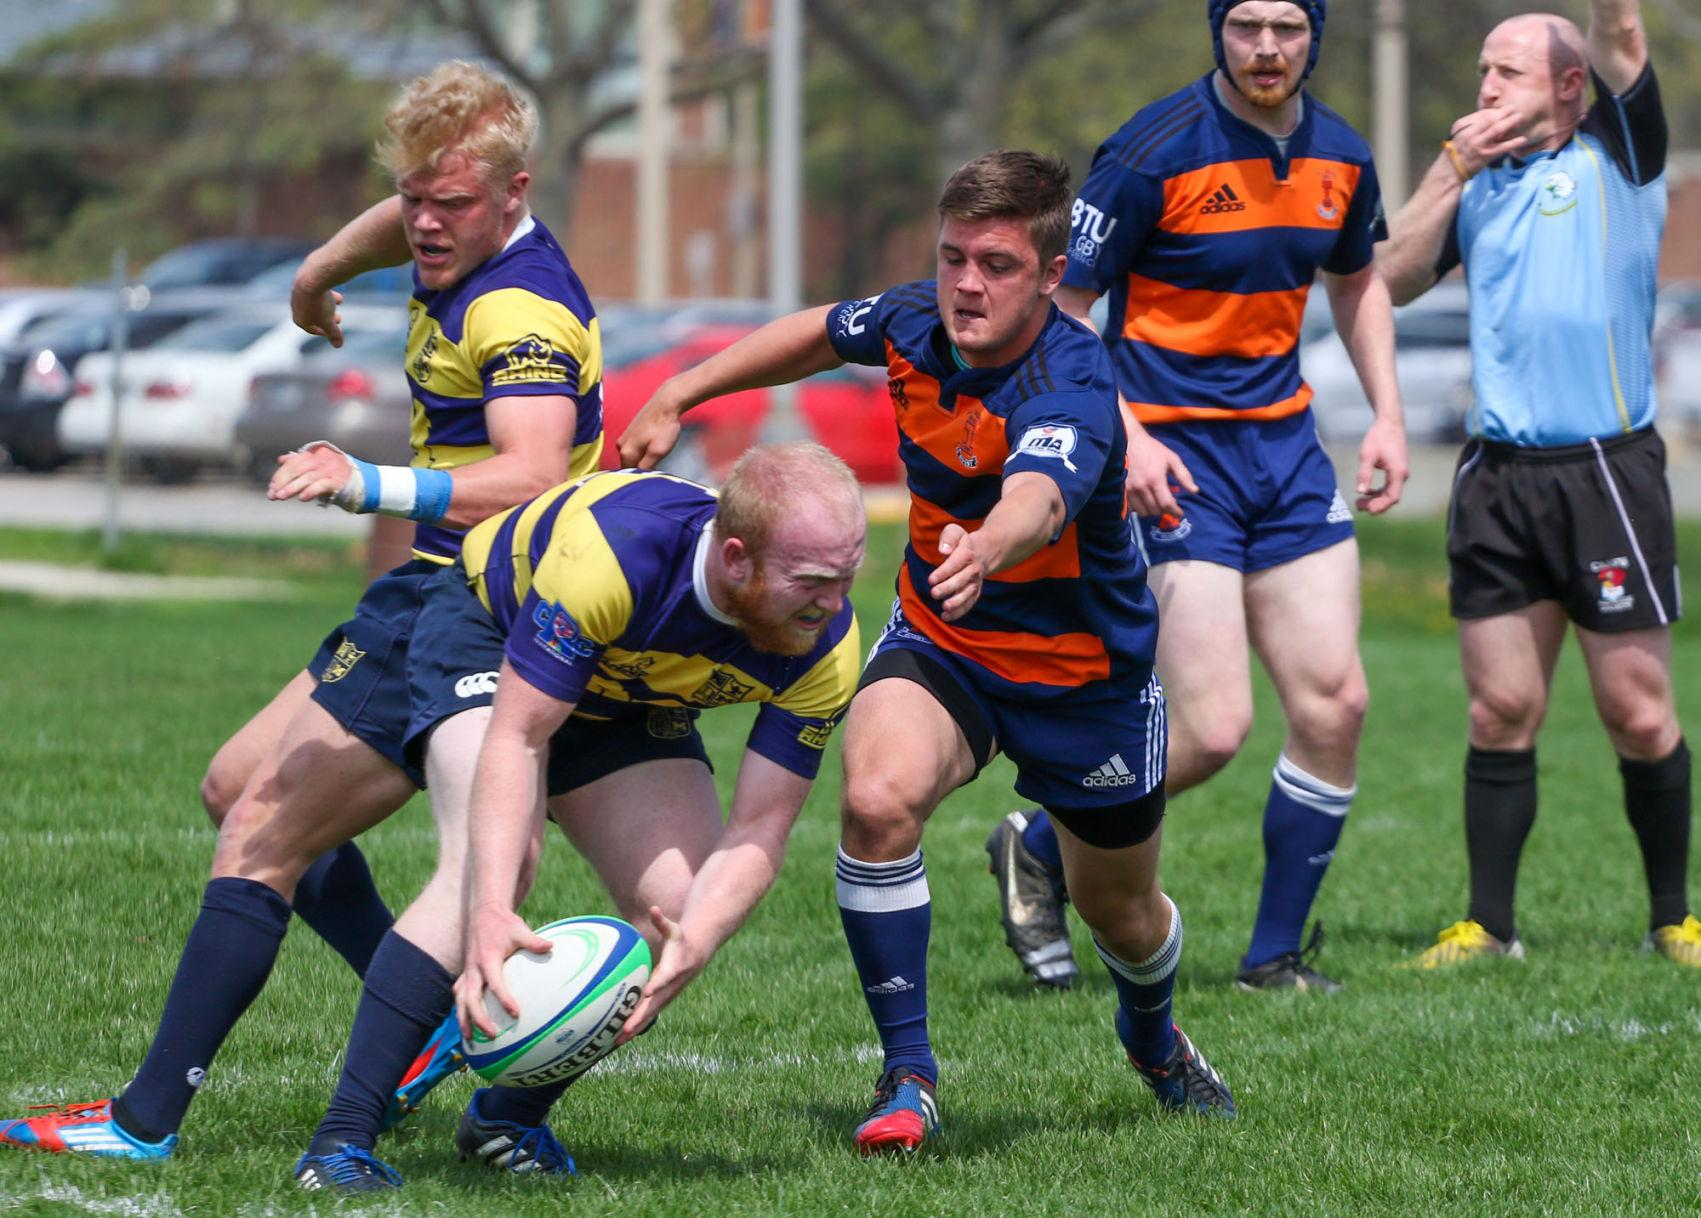 Illinois' Joe Bird goes after Michigan's offense during the Big Ten Rugby Tournament v. Michigan at the Complex Fields on Saturday.